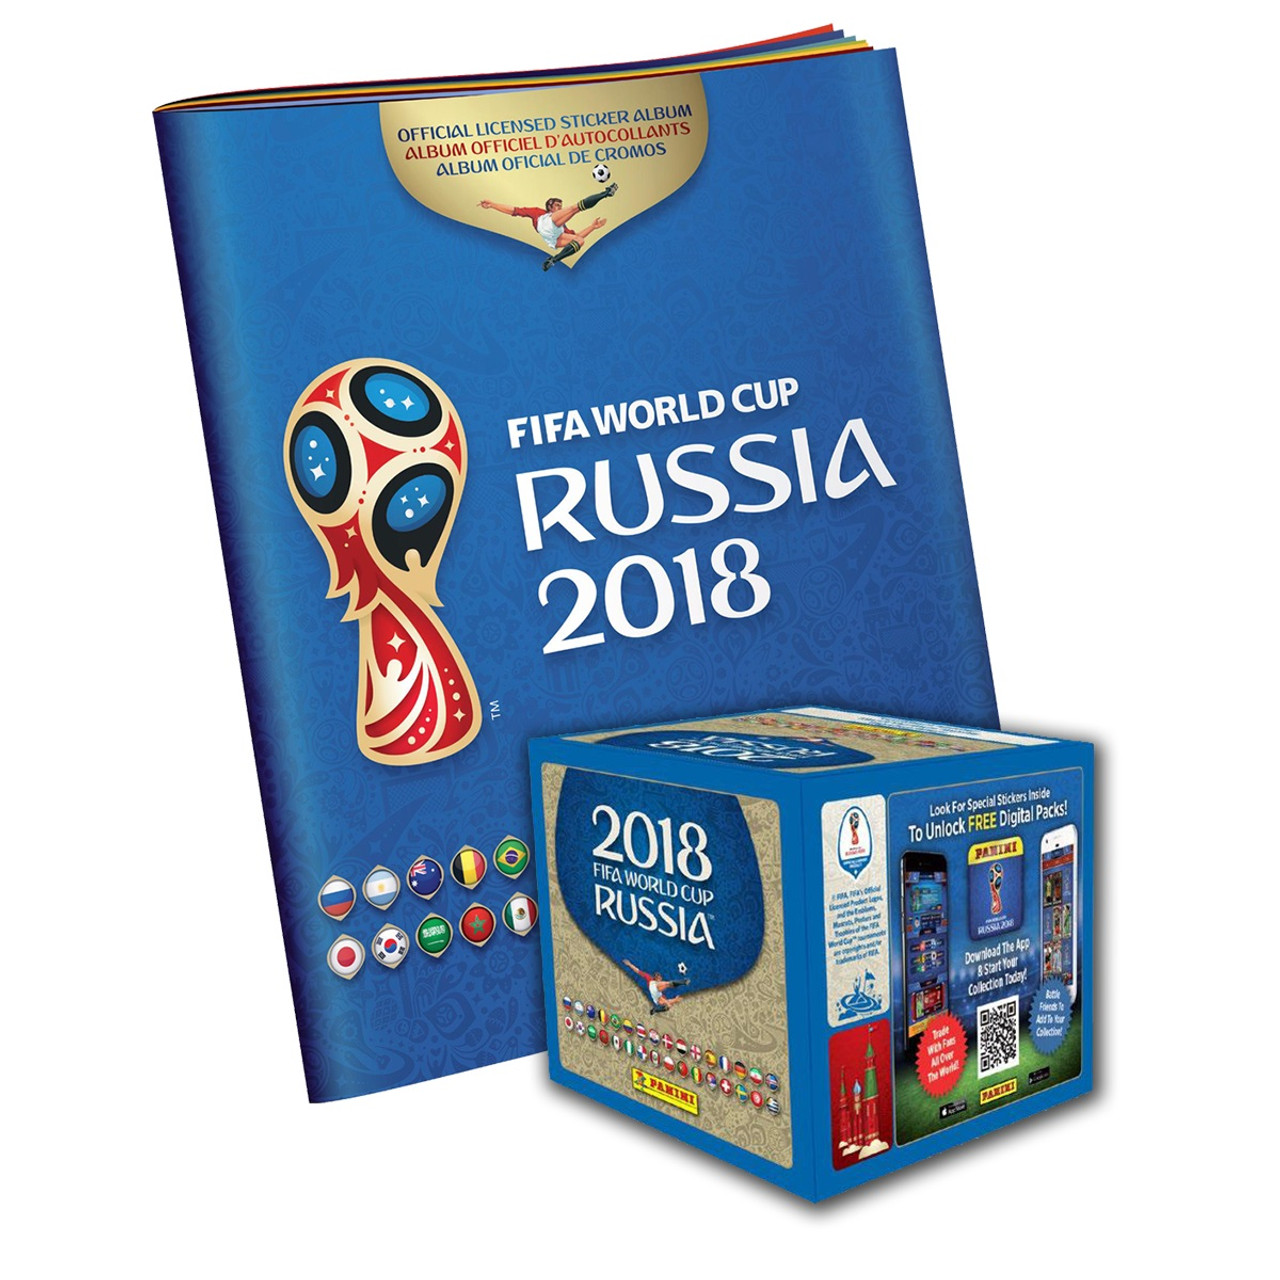 41be5fd15 PANINI 2018 FIFA WORLD CUP RUSSIA ALBUM AND STICKERS (50 packets x 5  stickers) - NOI USA